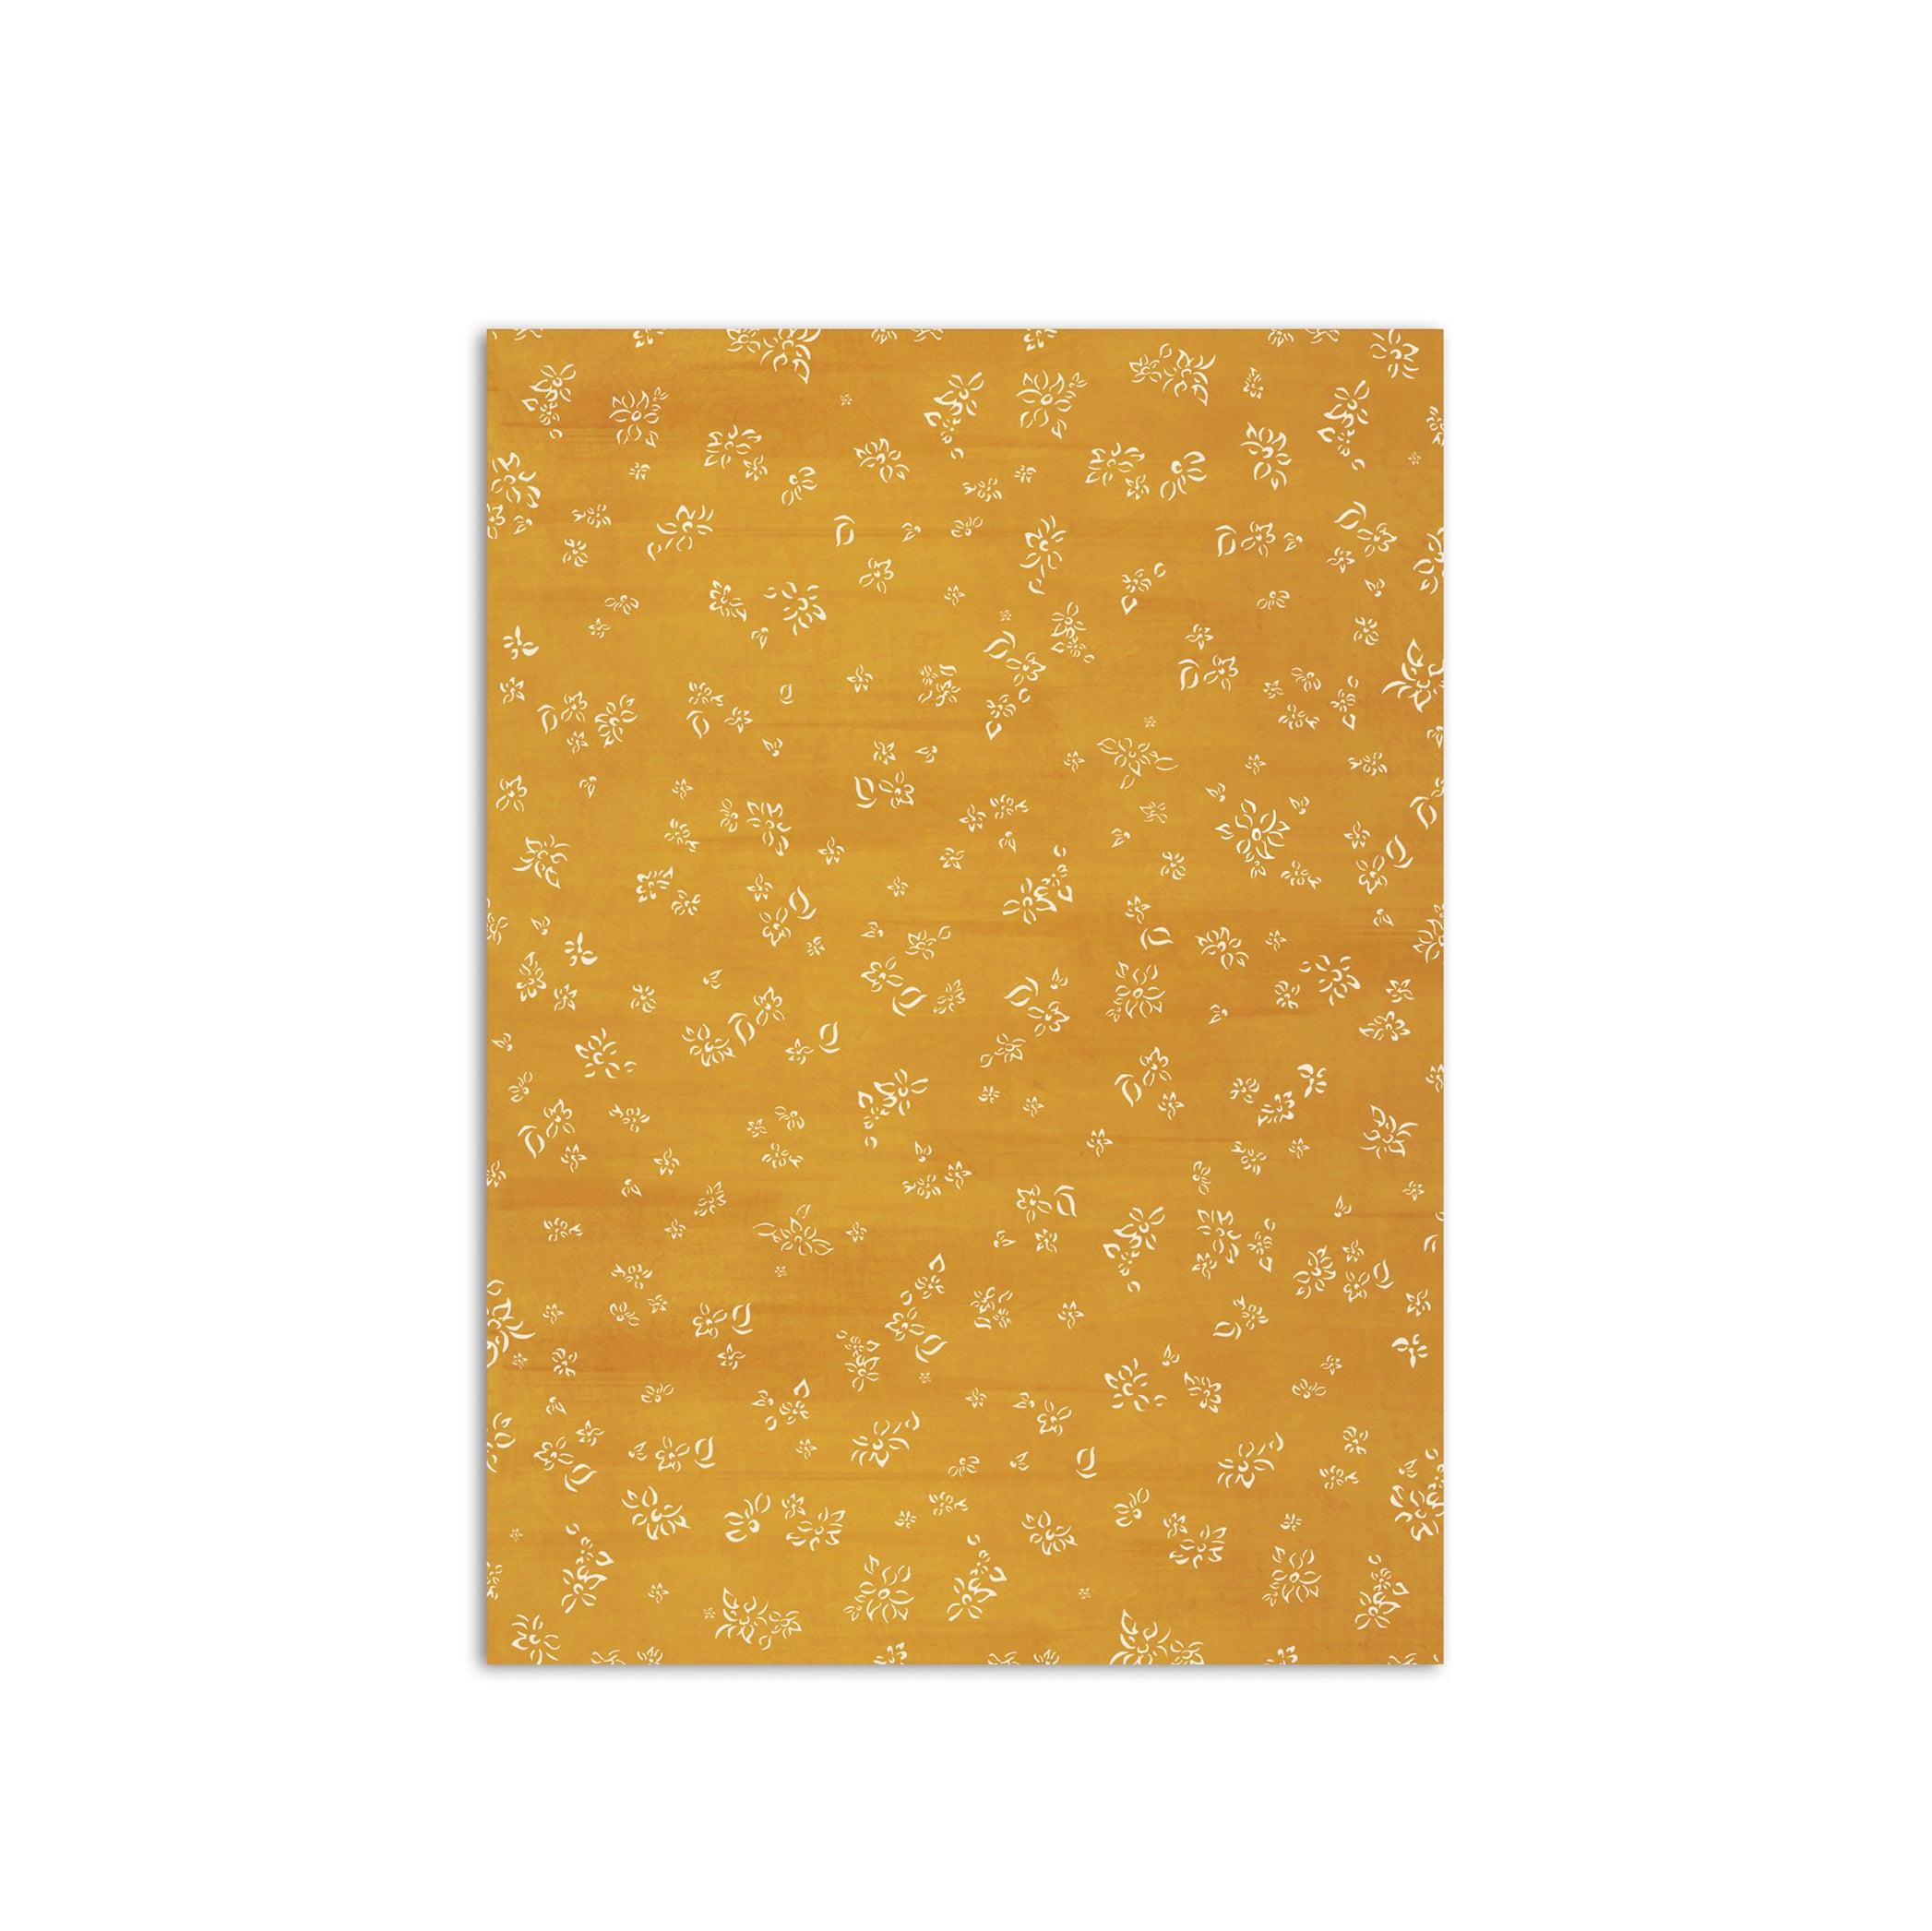 S&B Falling Flower Wrapping Paper in Mustard Yellow, Roll of 4